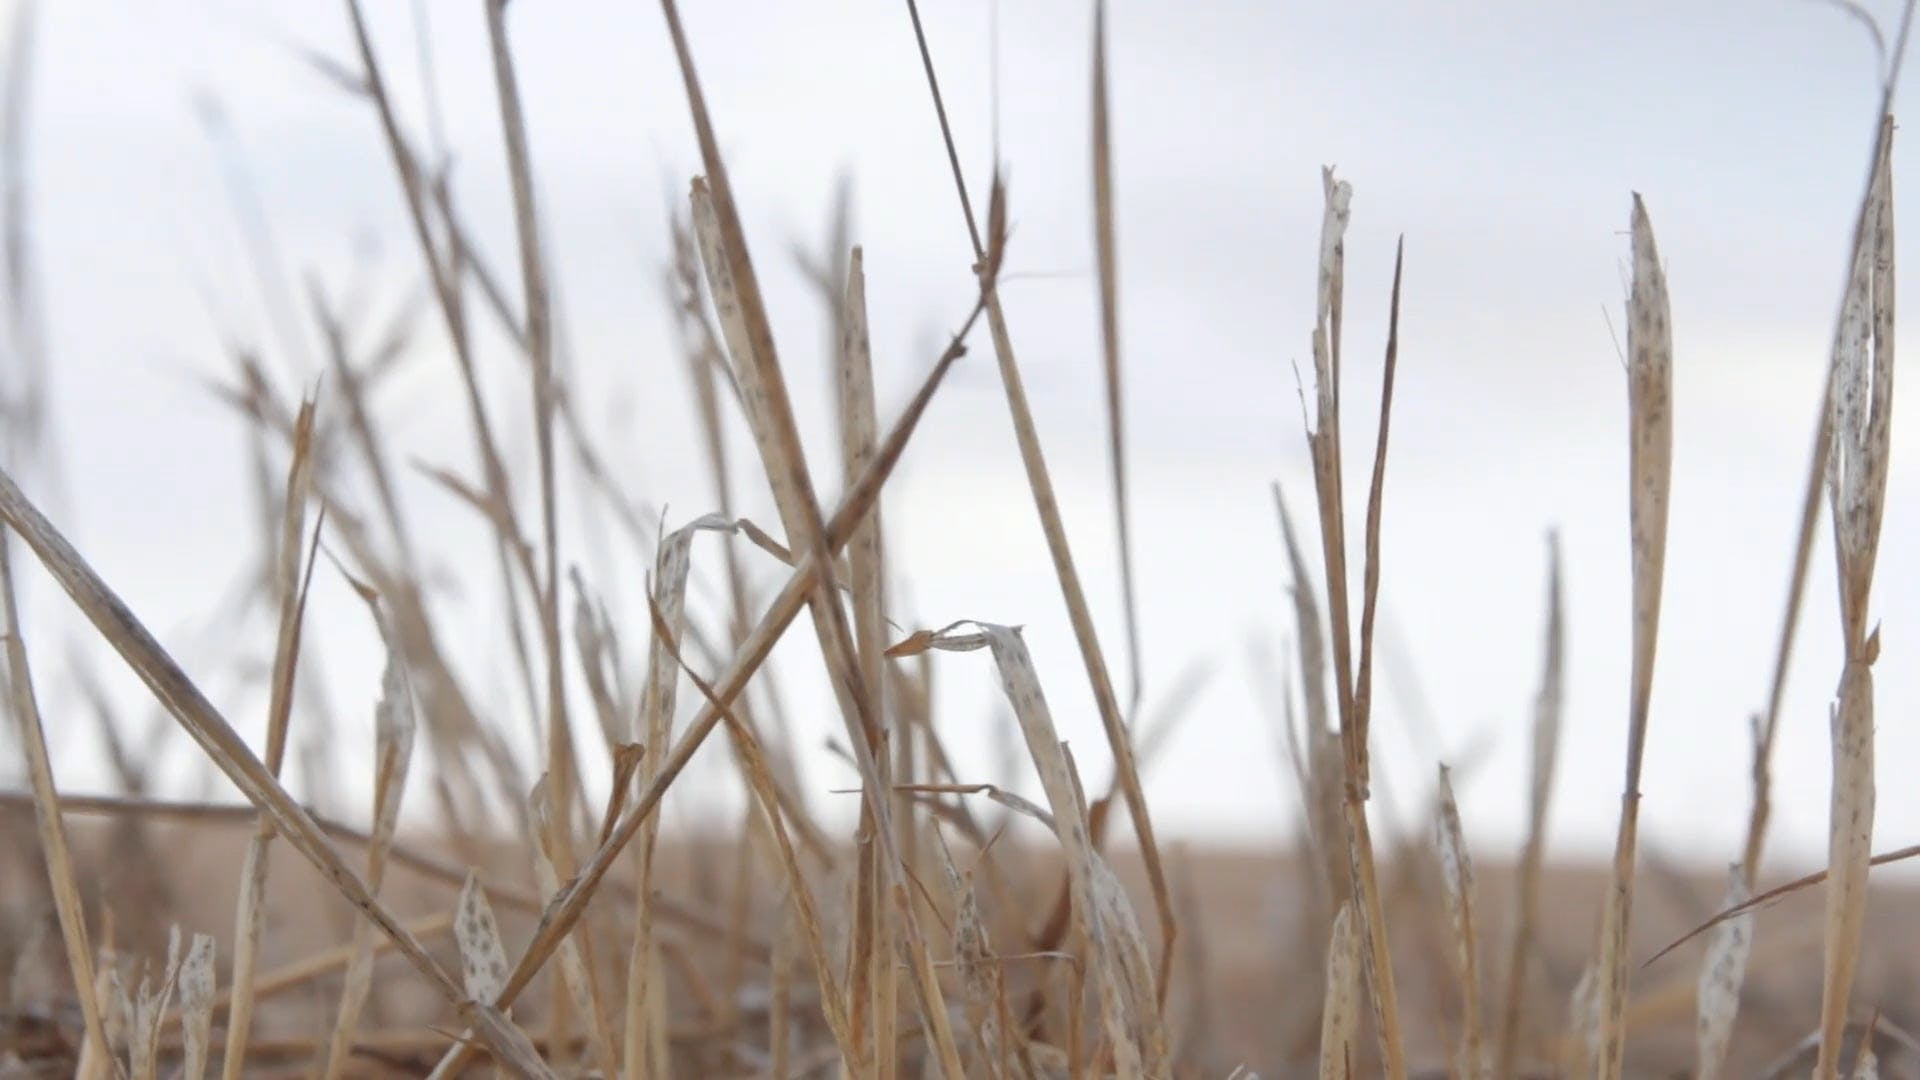 Close-Up Video Of Dry Straw